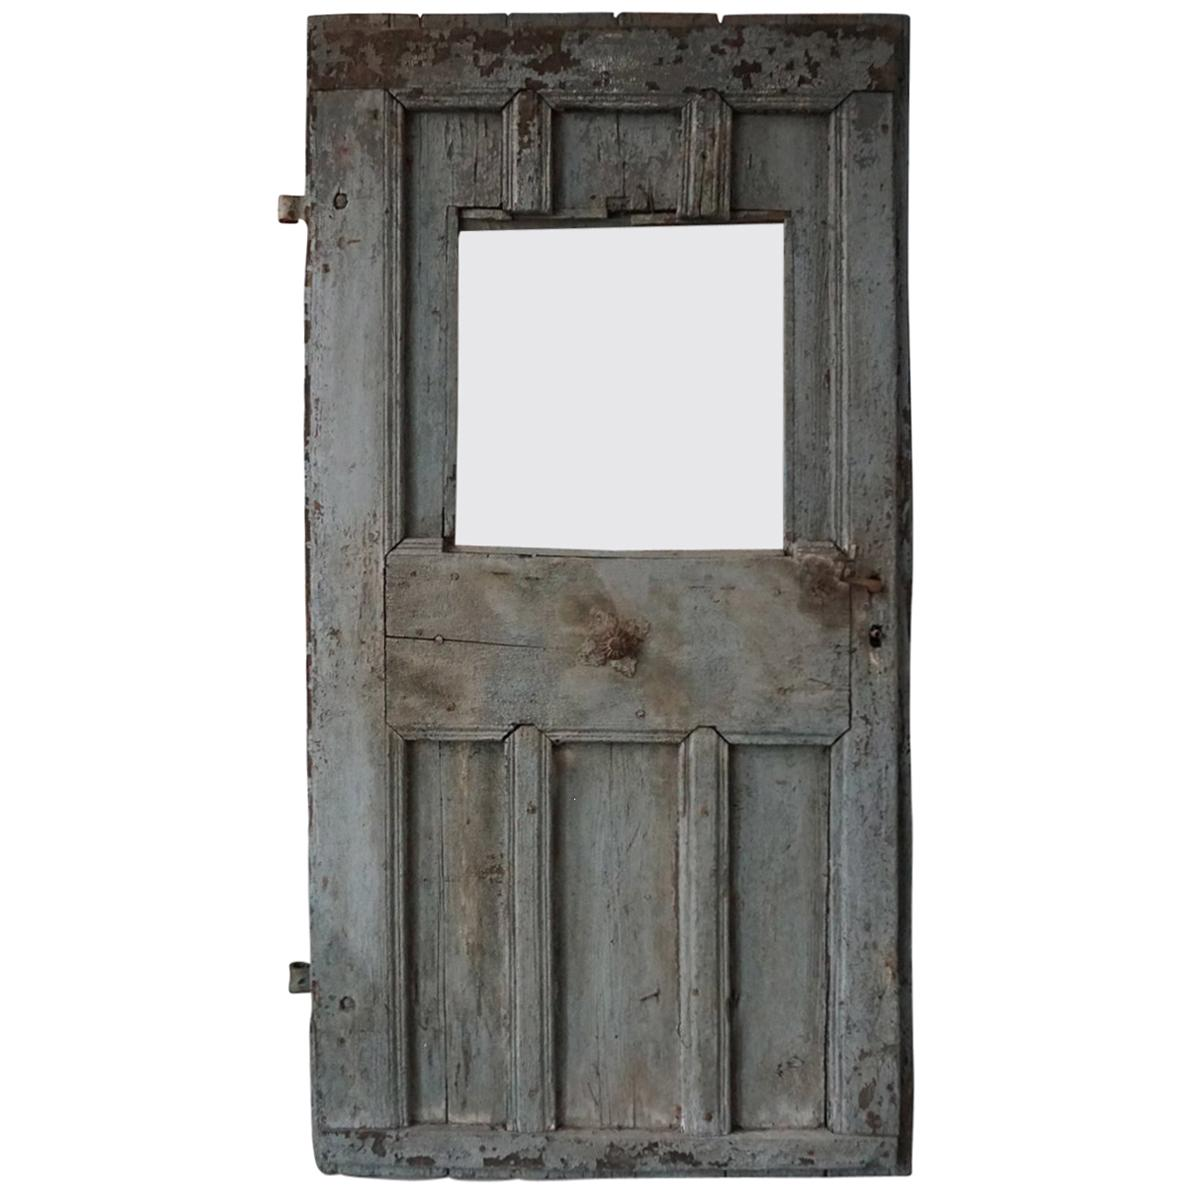 Single Antique European Farm Door